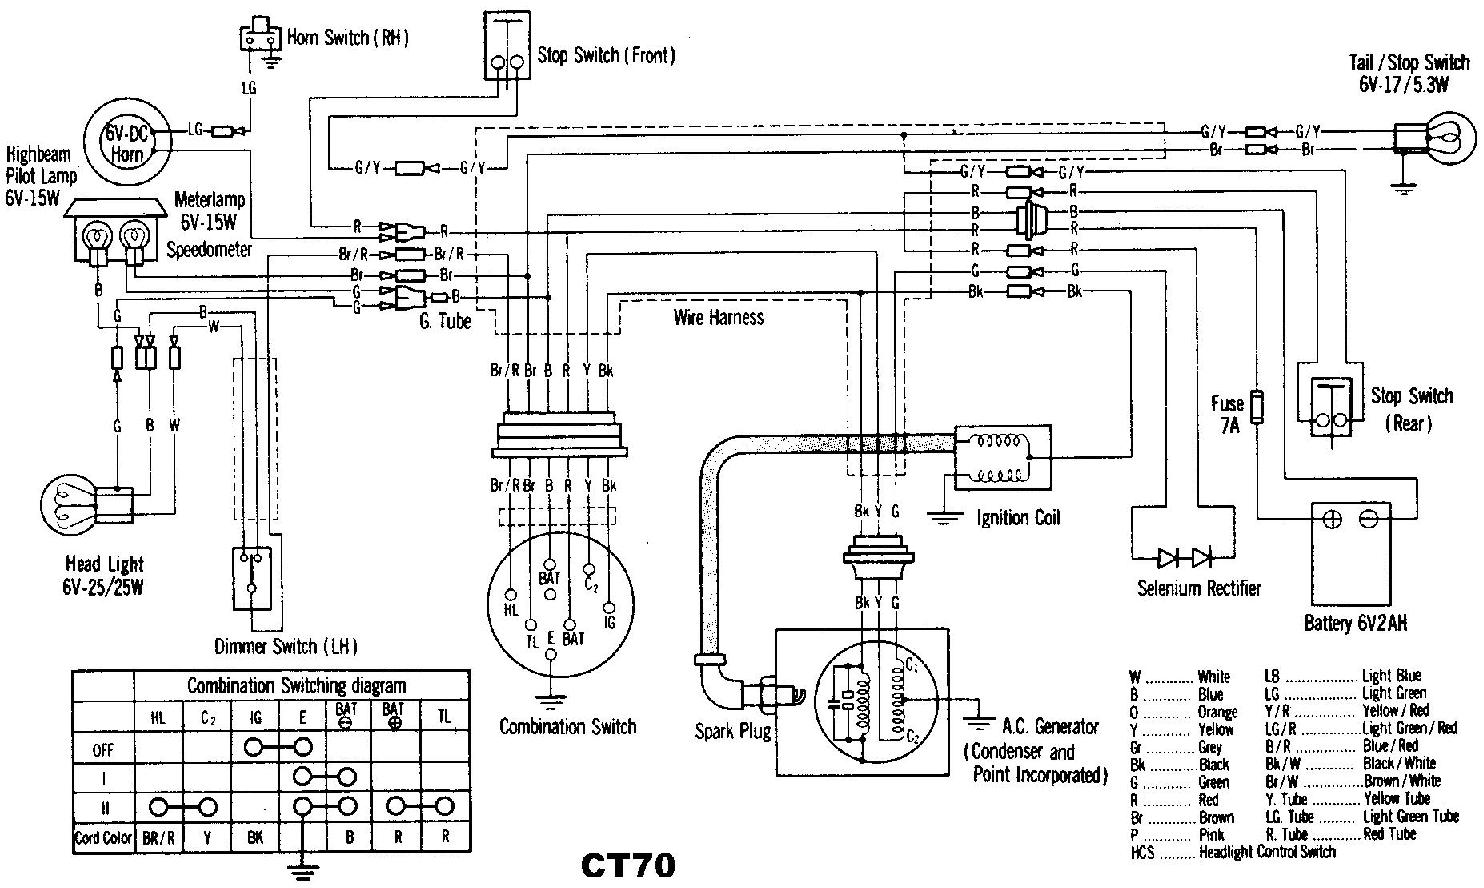 dratv_2269_123803613 ct 70 electrical issue honda c70 wiring diagram at honlapkeszites.co